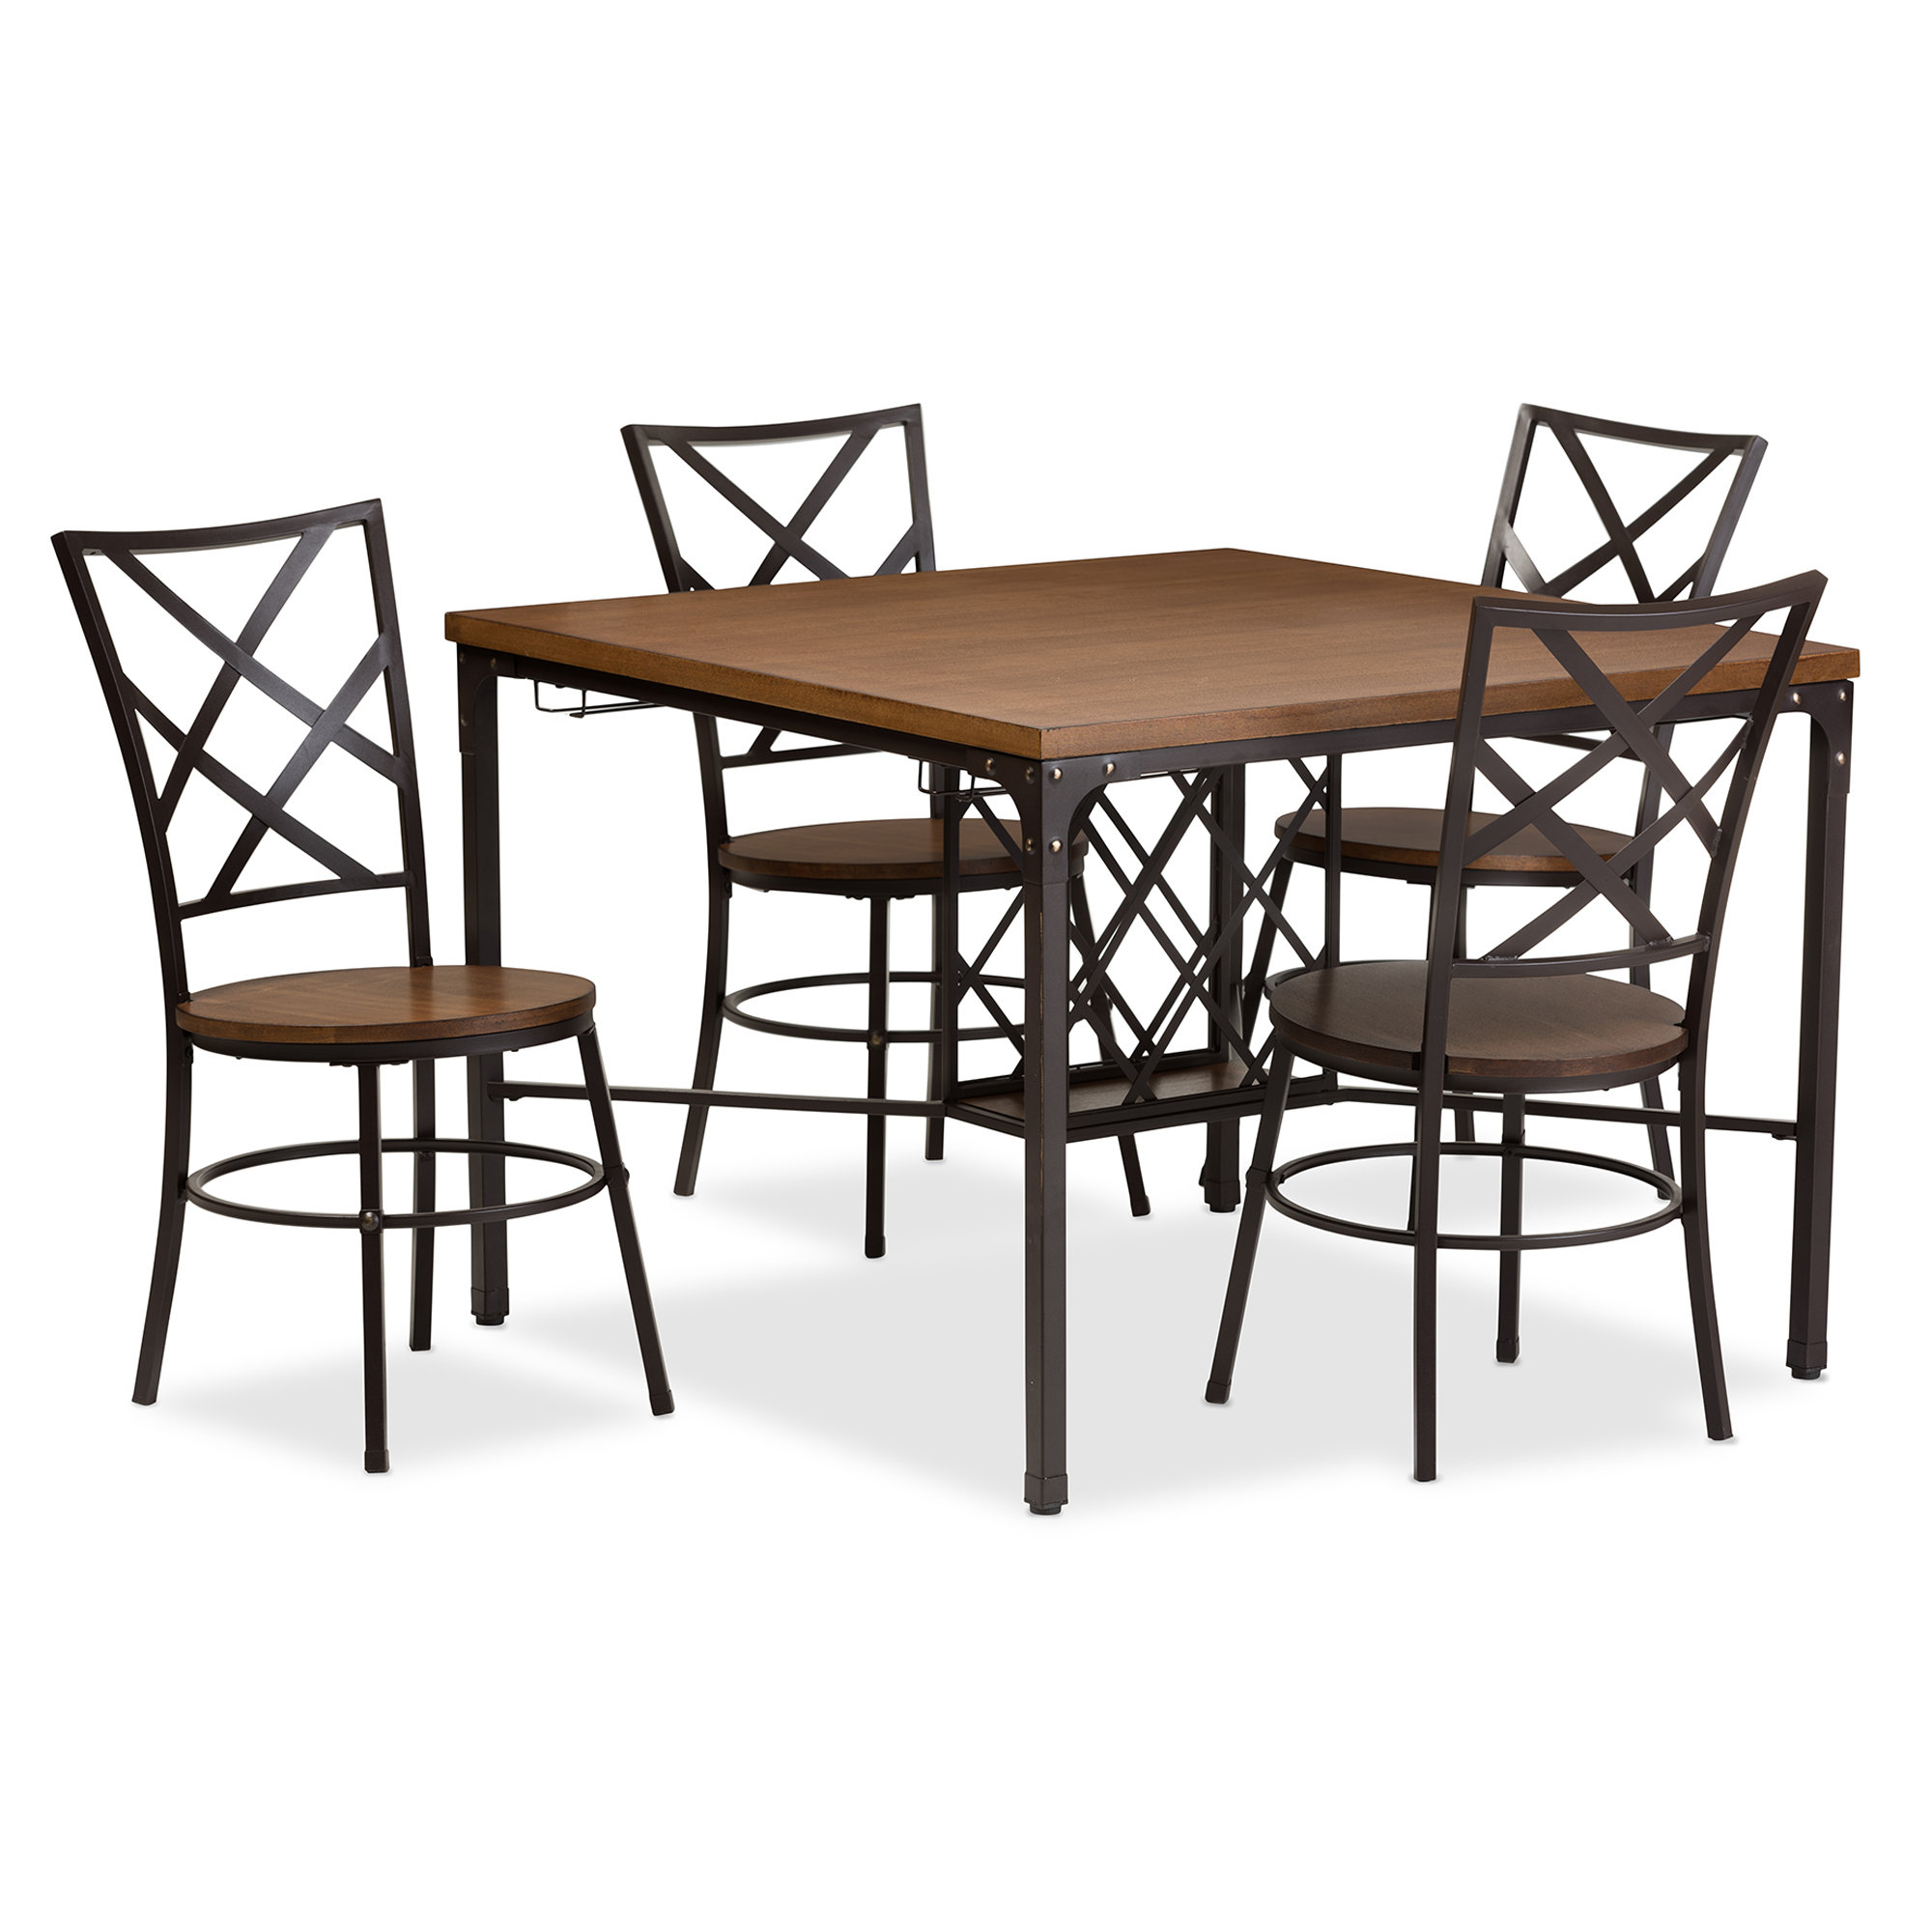 Calla 5 Piece Dining Set With Regard To Most Up To Date Stouferberg 5 Piece Dining Sets (Photo 10 of 20)